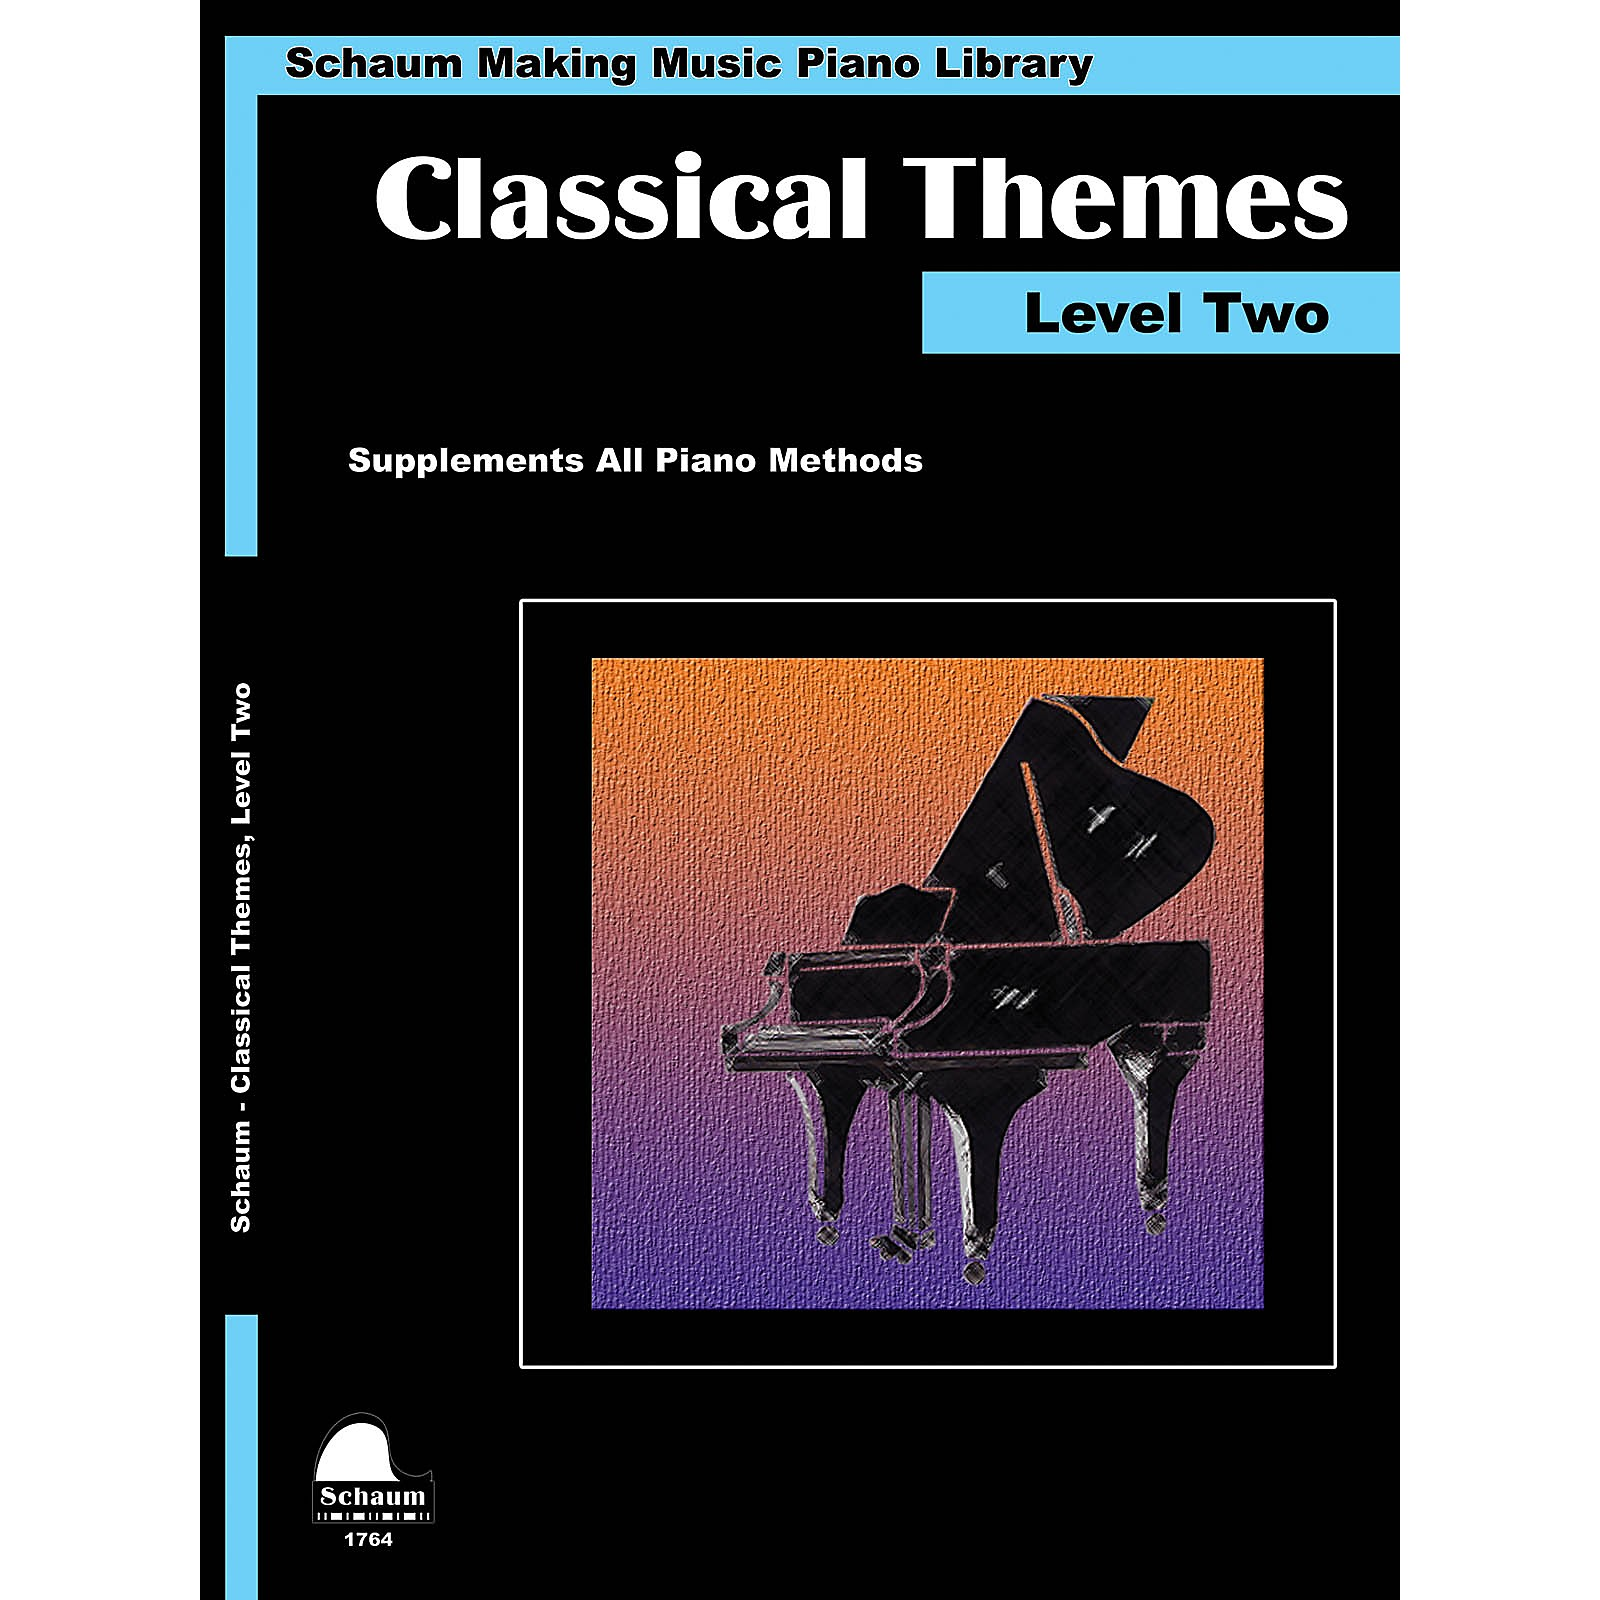 SCHAUM Classical Themes Level 2 (Schaum Making Music Piano Library) Educational Piano Book (Level Late Elem)